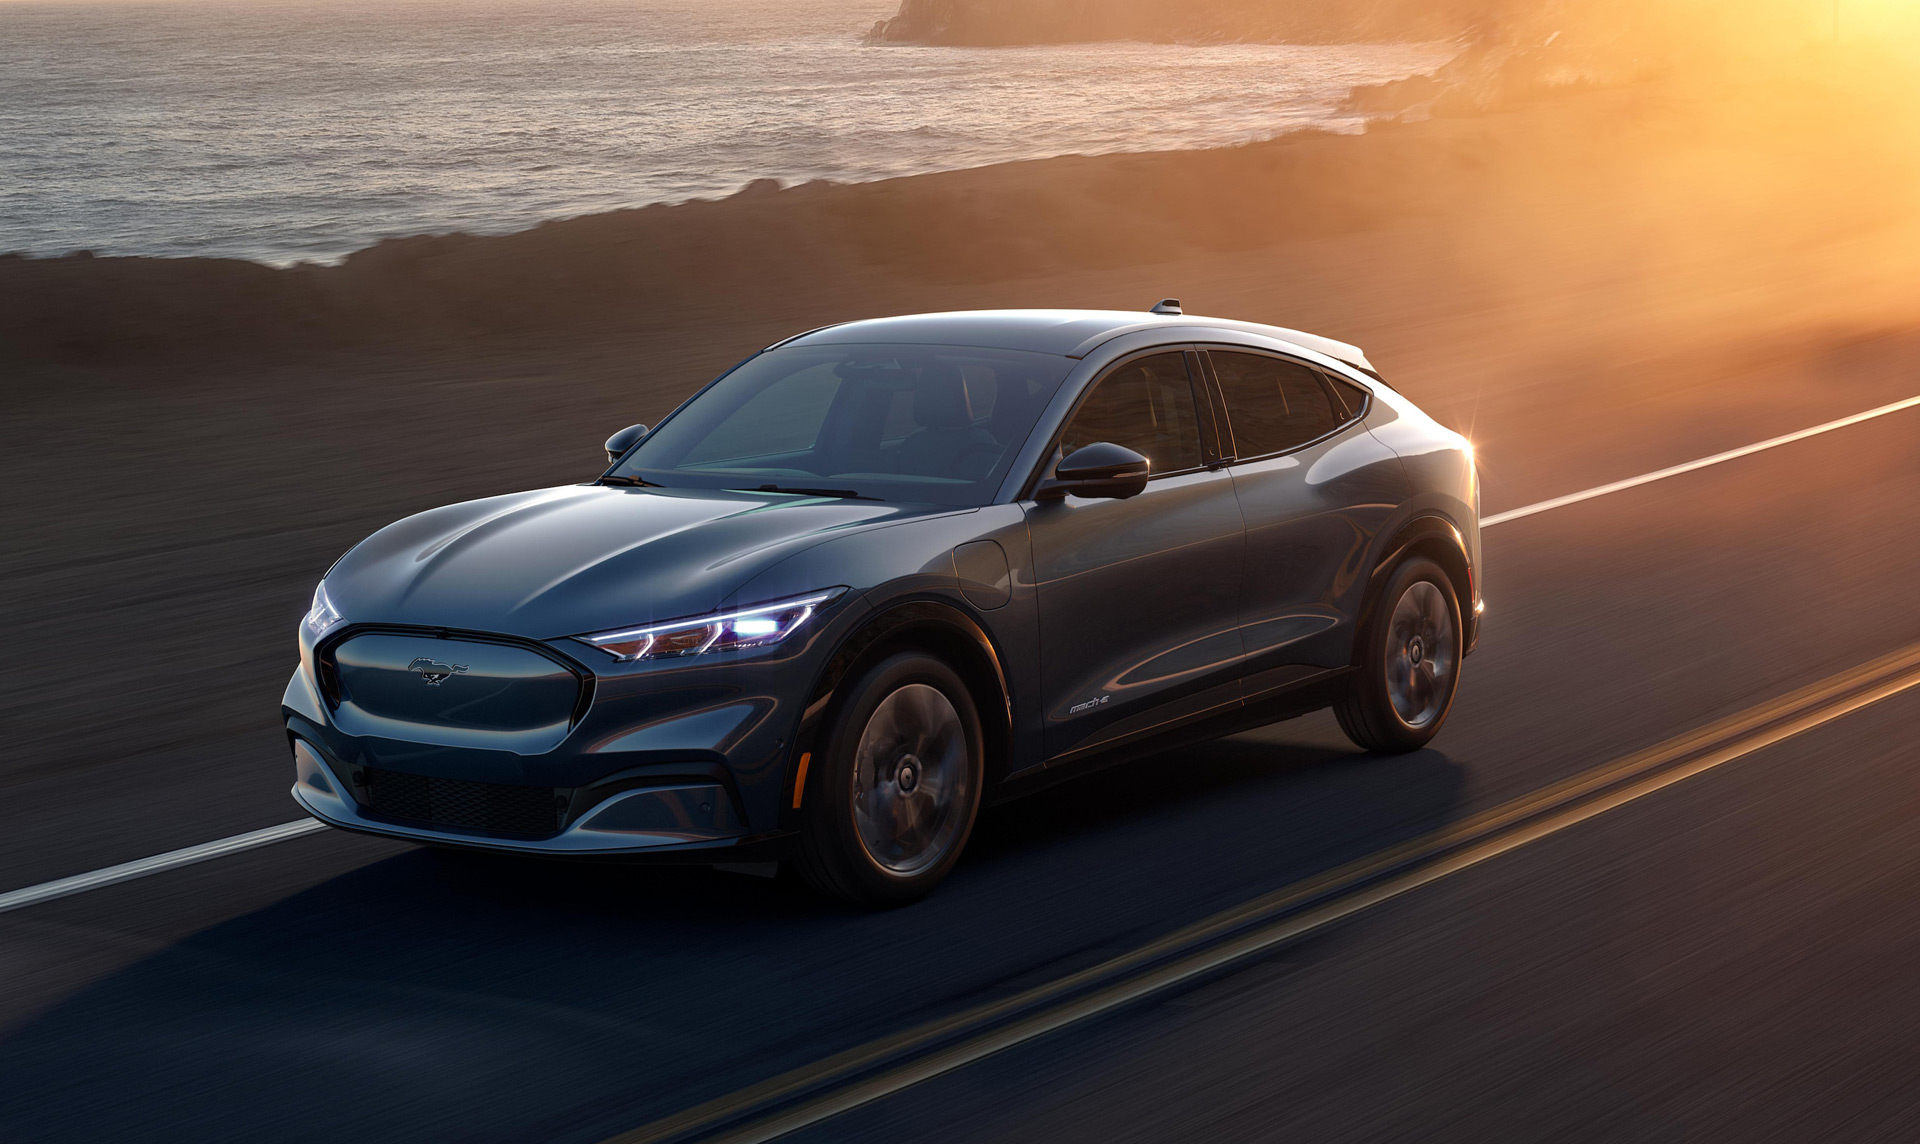 Best Midsize Sedans 2021 Best Car To Buy: What's coming for 2021